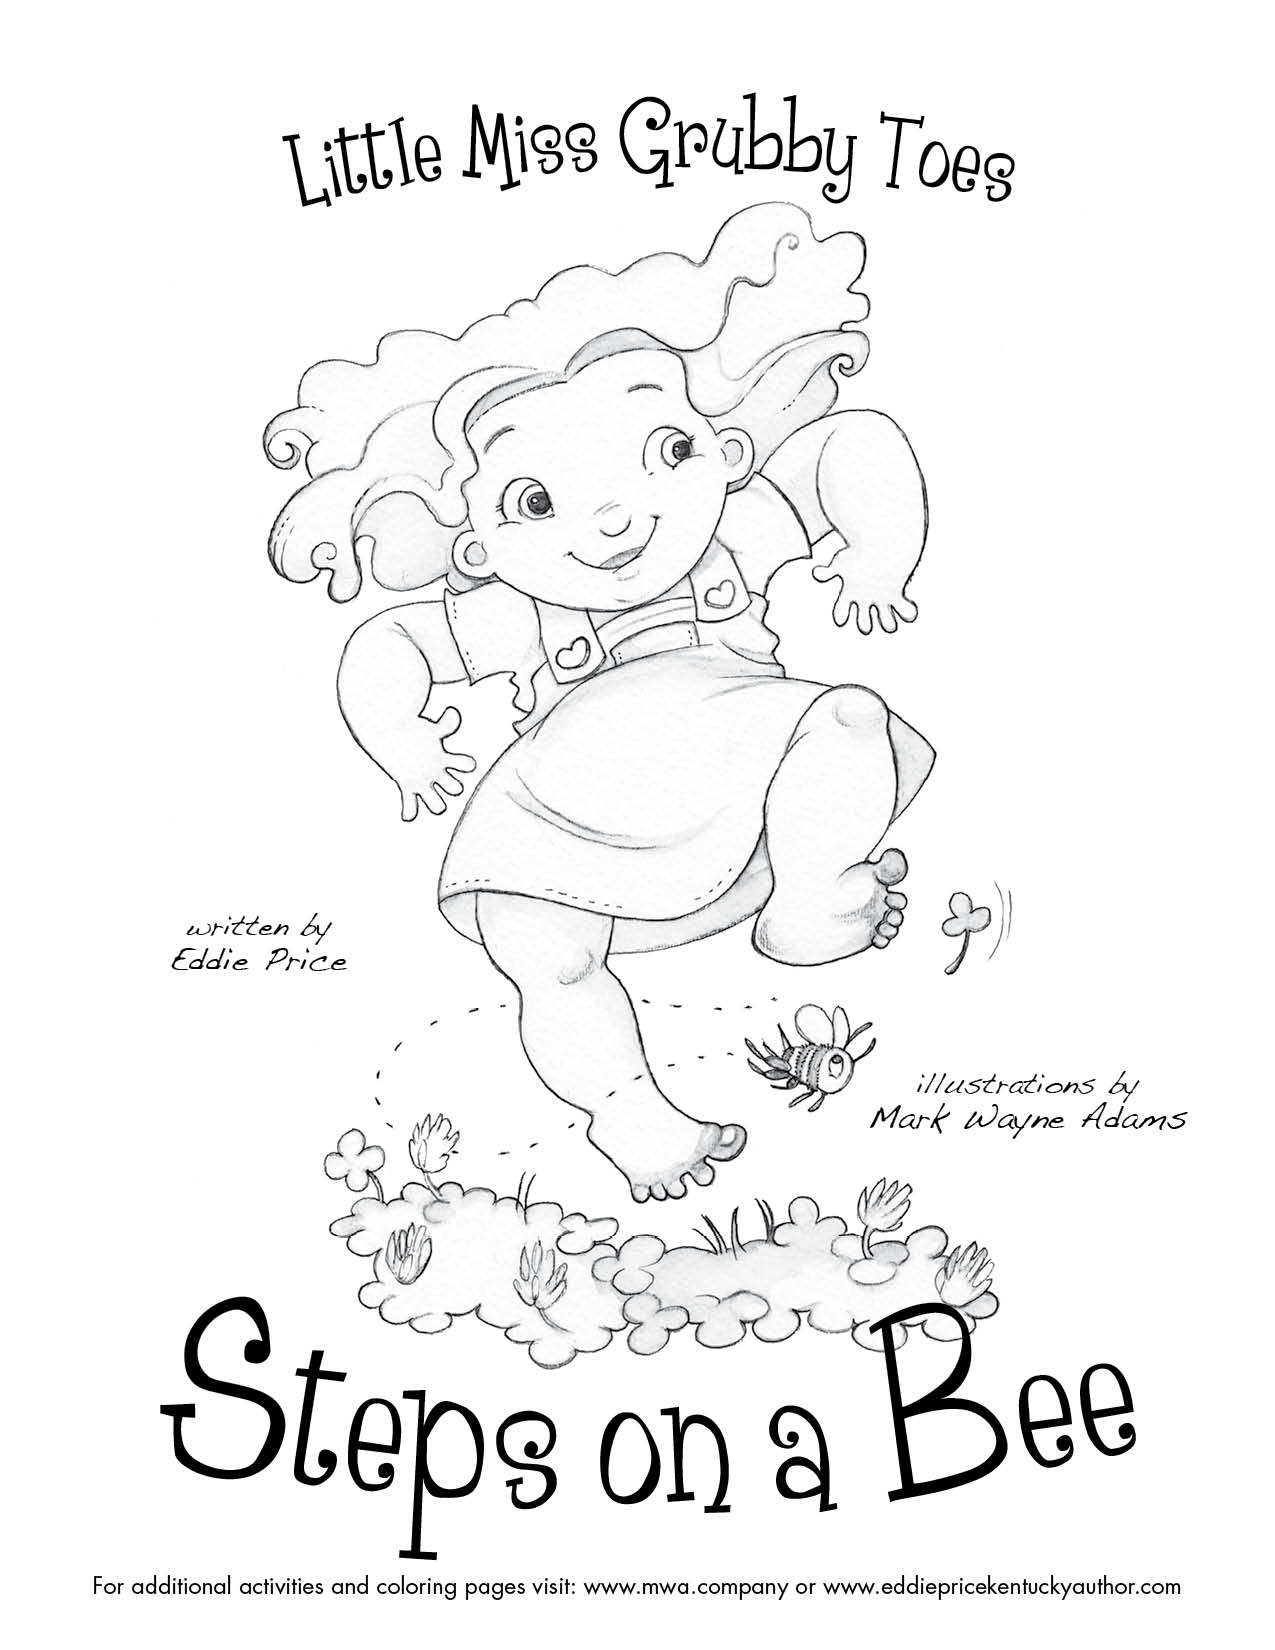 """Coloring Page: """"Little Miss Grubby Toes: Steps on a Bee!"""""""